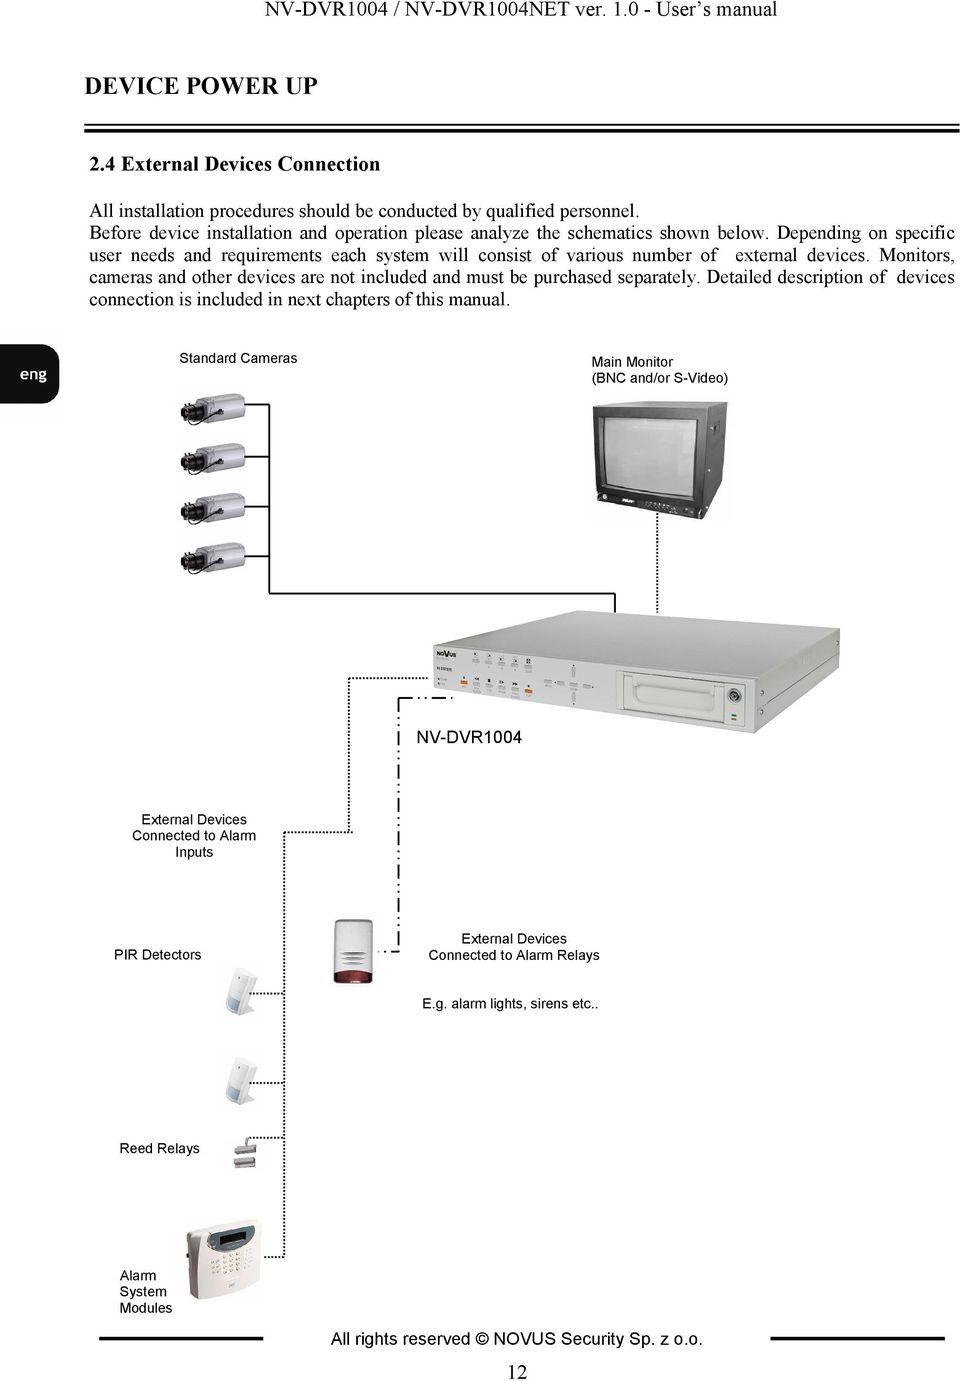 Monitors, cameras and other devices are not included and must be purchased separately. Detailed description of devices connection is included in next chapters of this manual.